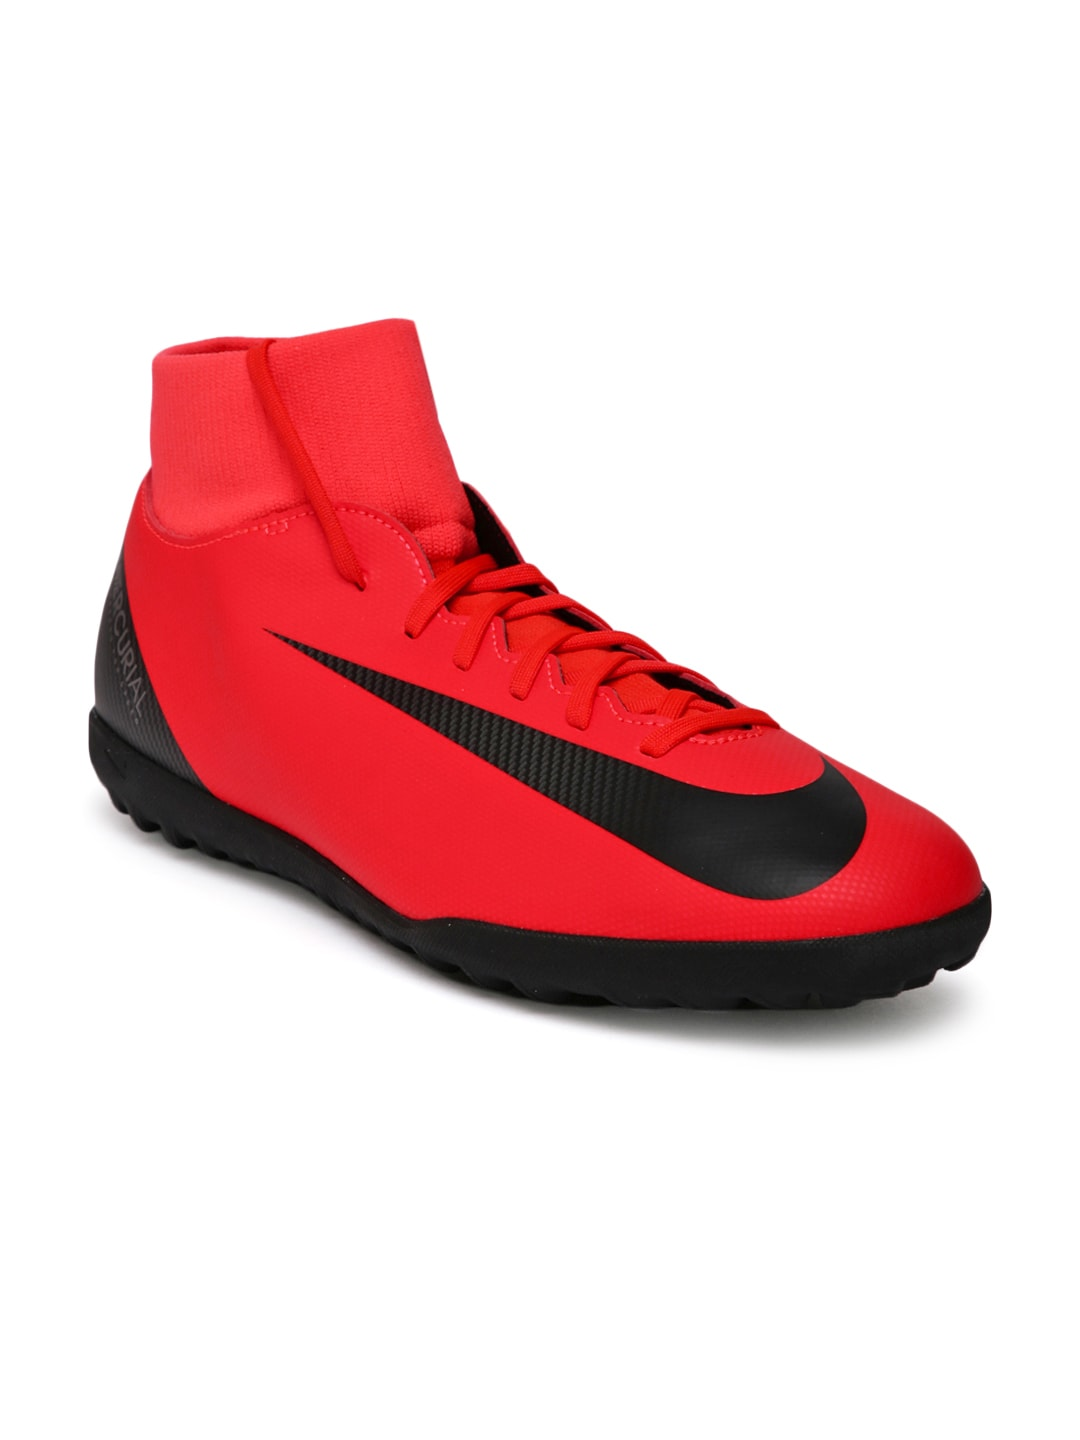 2bab2e2630 Nike Red Shoes - Buy Nike Red Shoes Online in India